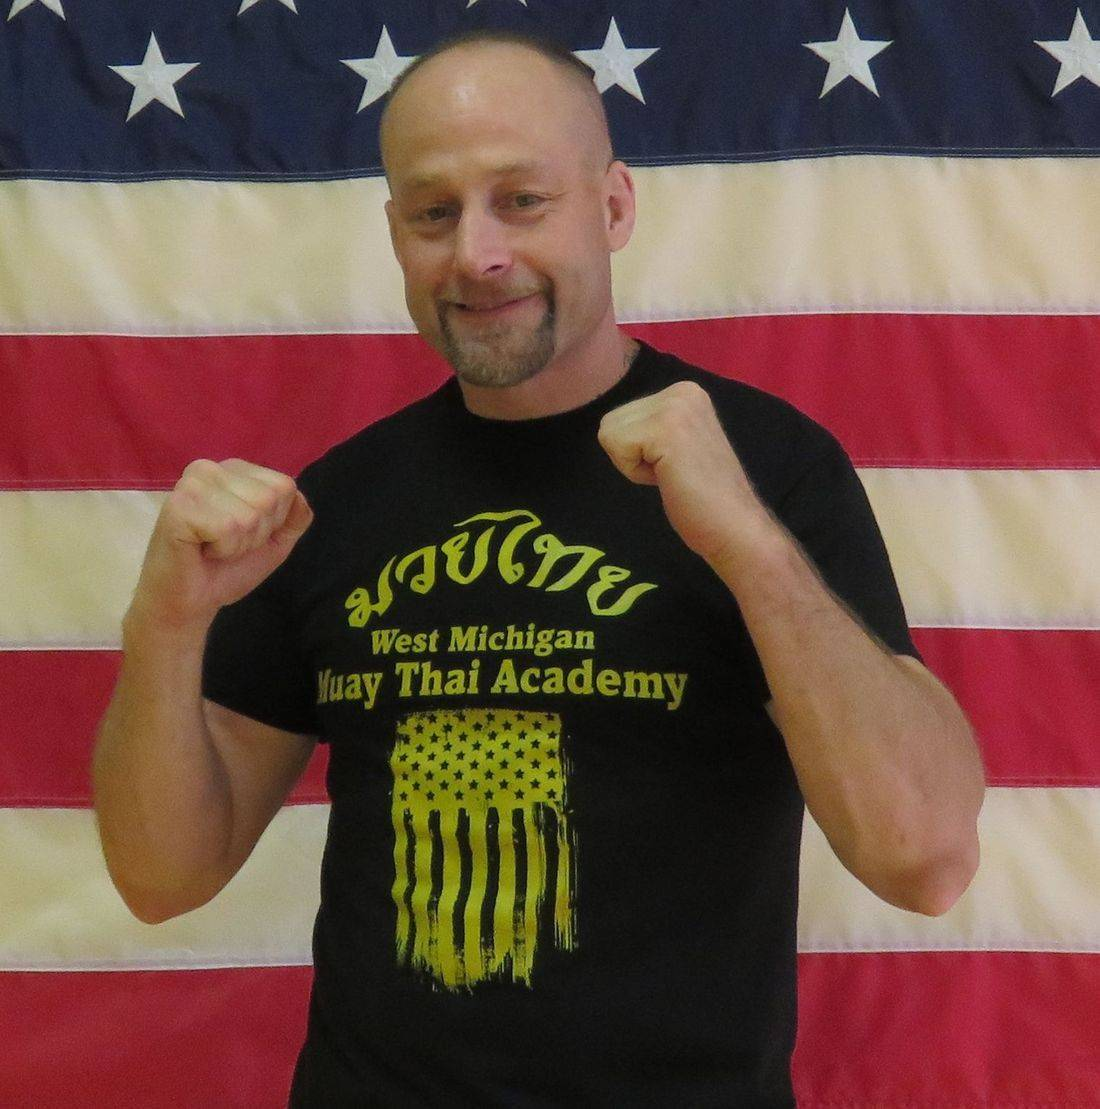 Instructor, muay thai, boxing, kickboxing, trainer, fighter